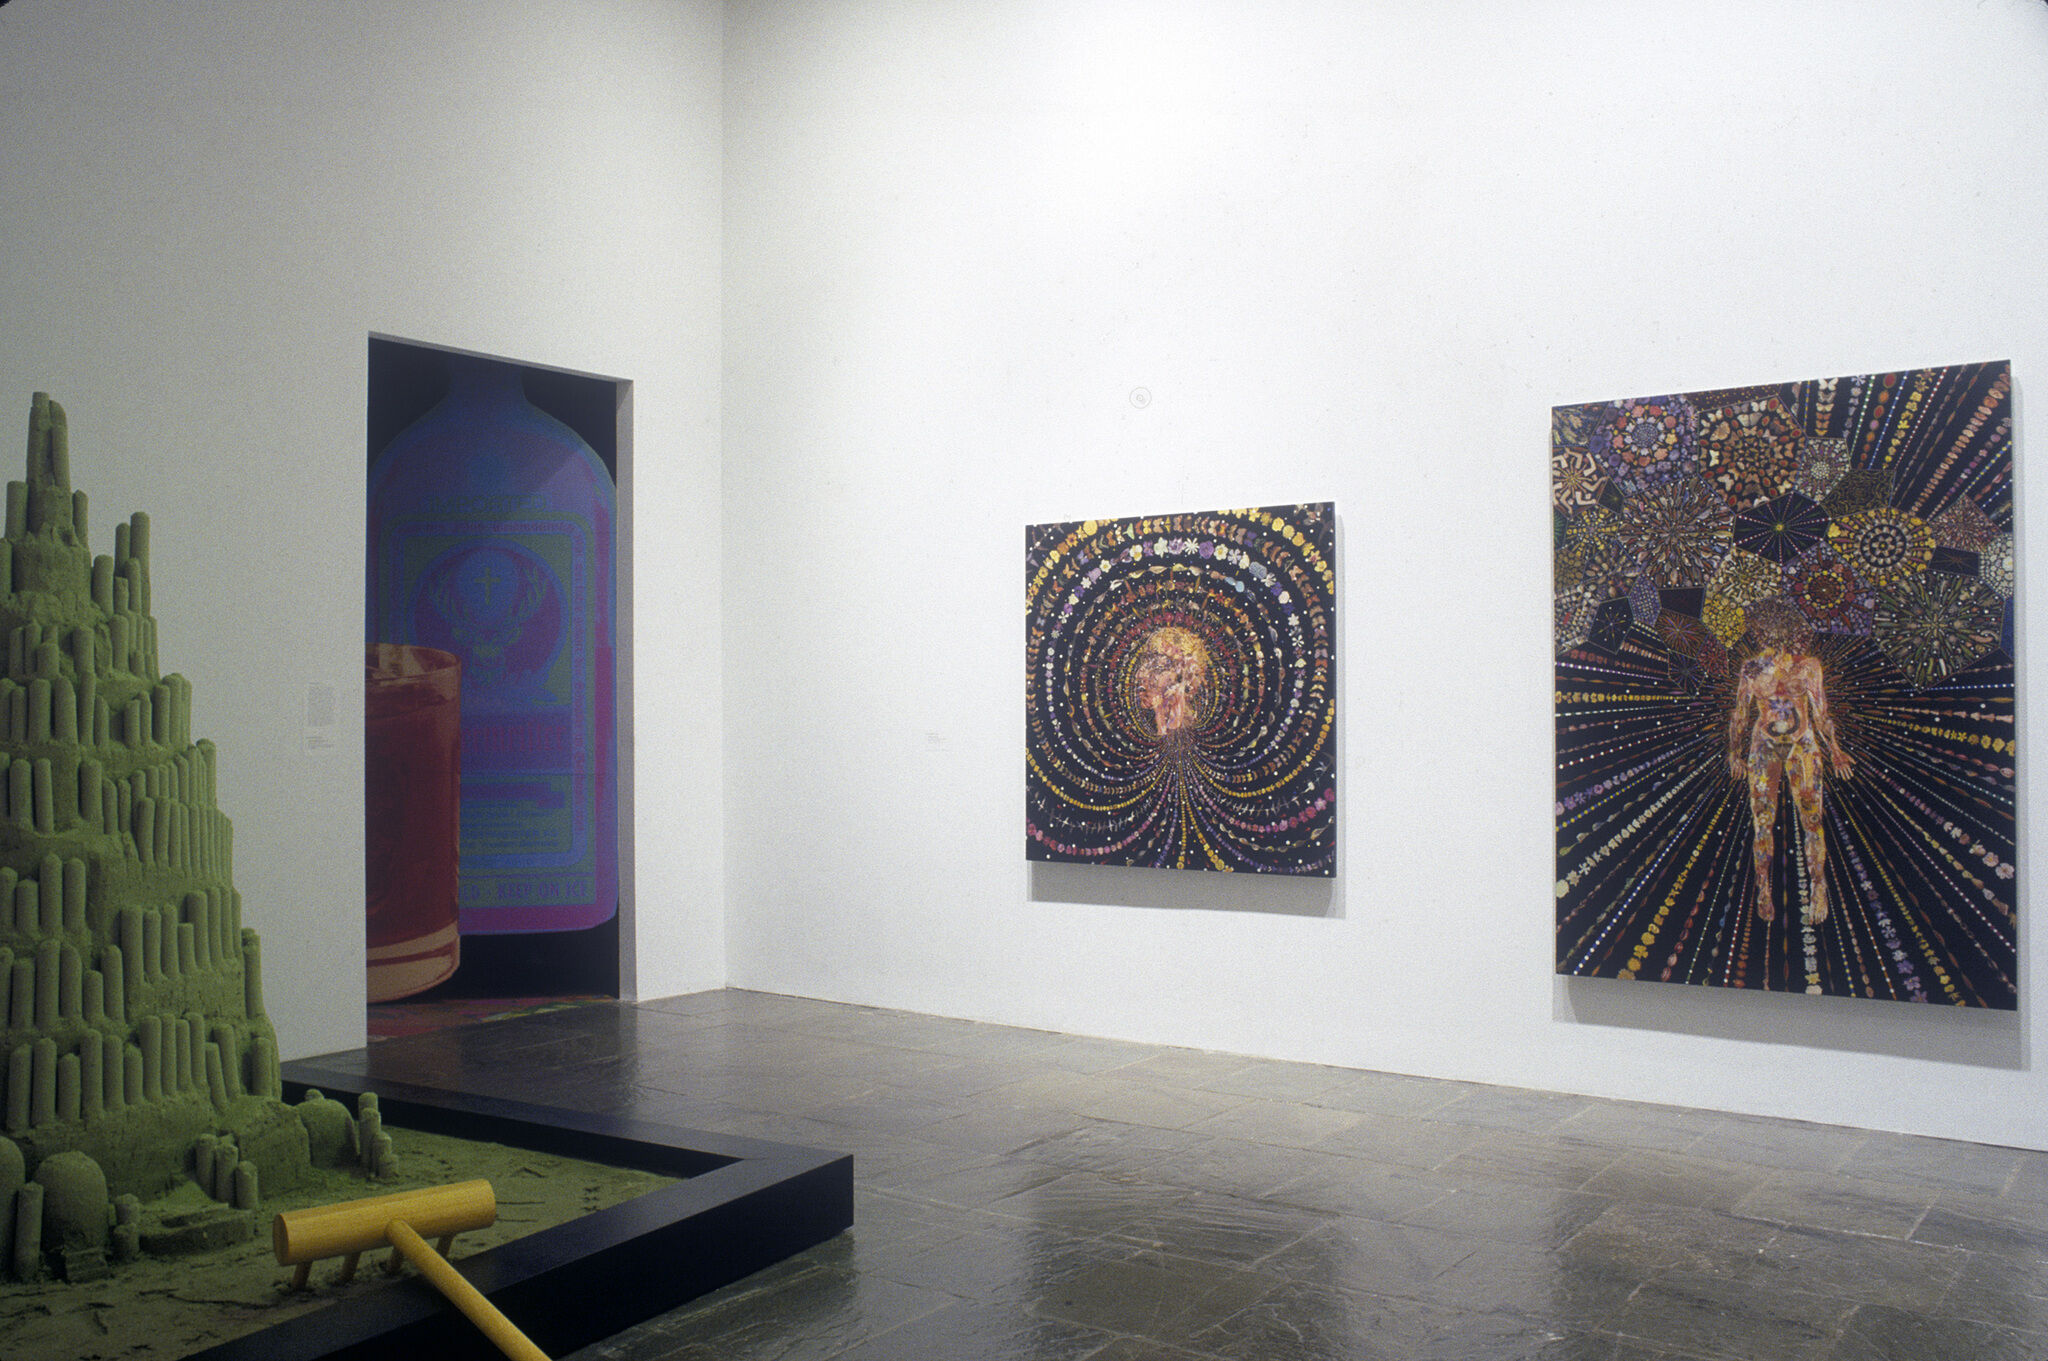 Three abstract paintings displayed in a gallery along with a green sculpture.